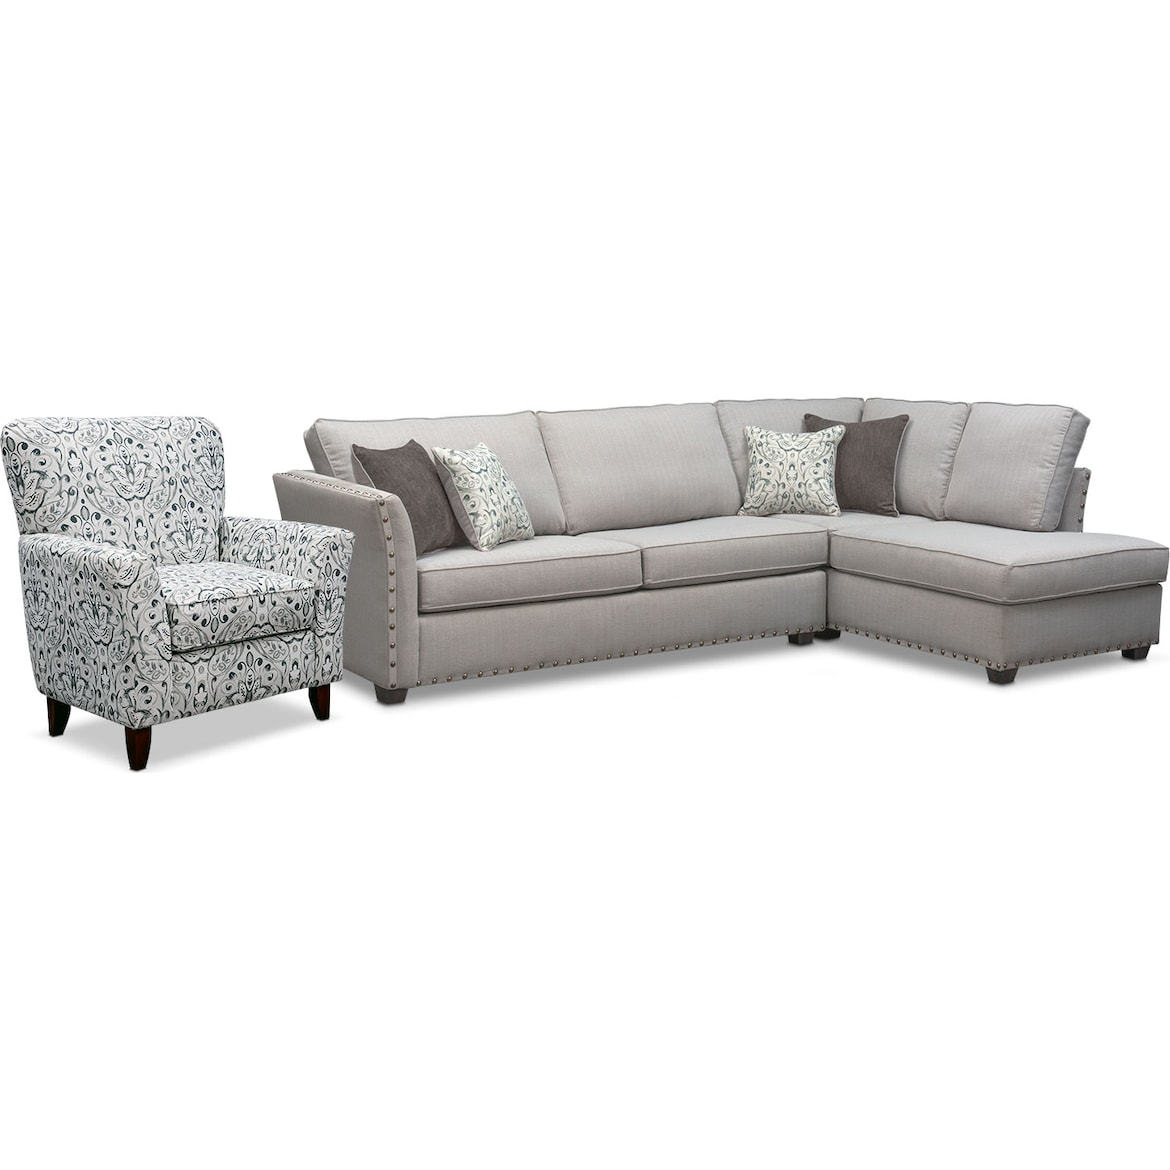 Mckenna 2 Piece Sleeper Sectional And Accent Chair Set